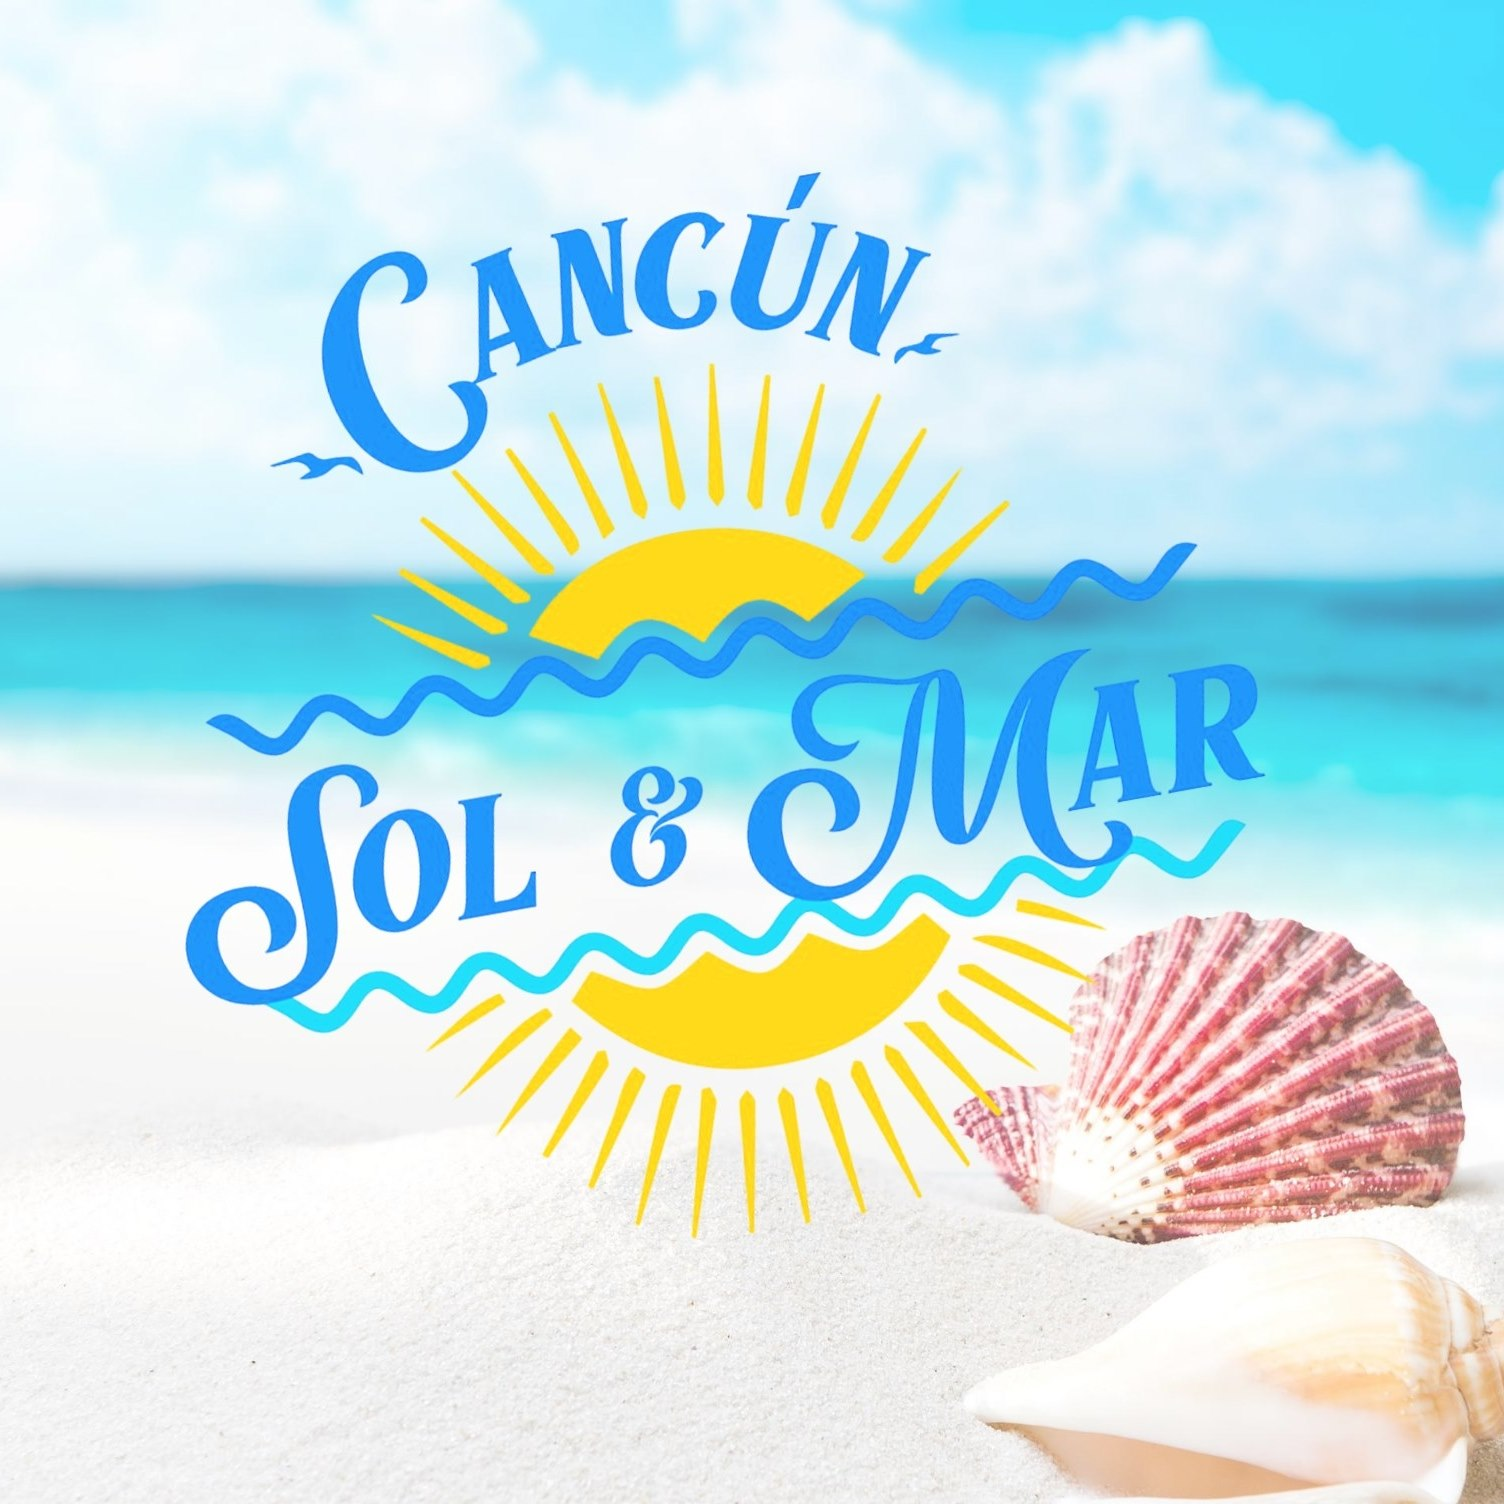 Cancun, Sol Y Mar